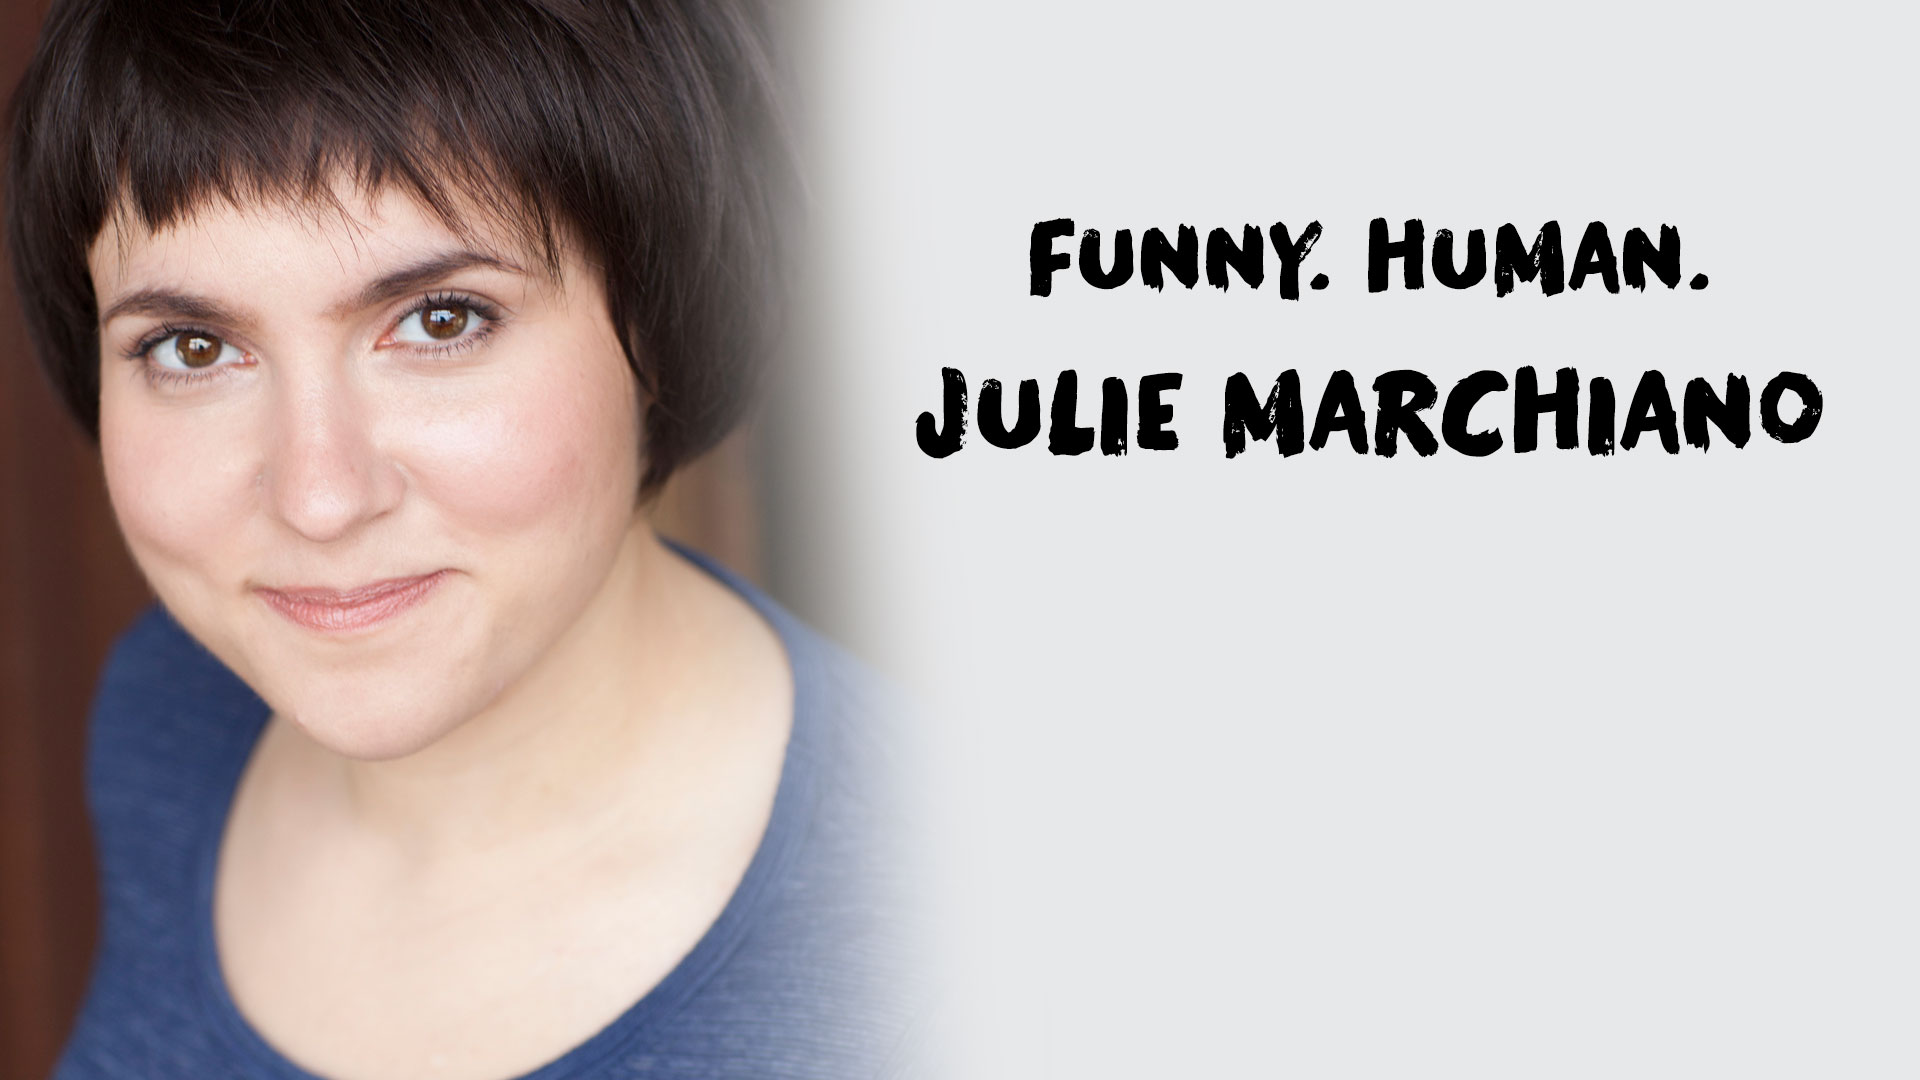 Funny Human: Julie Marchiano